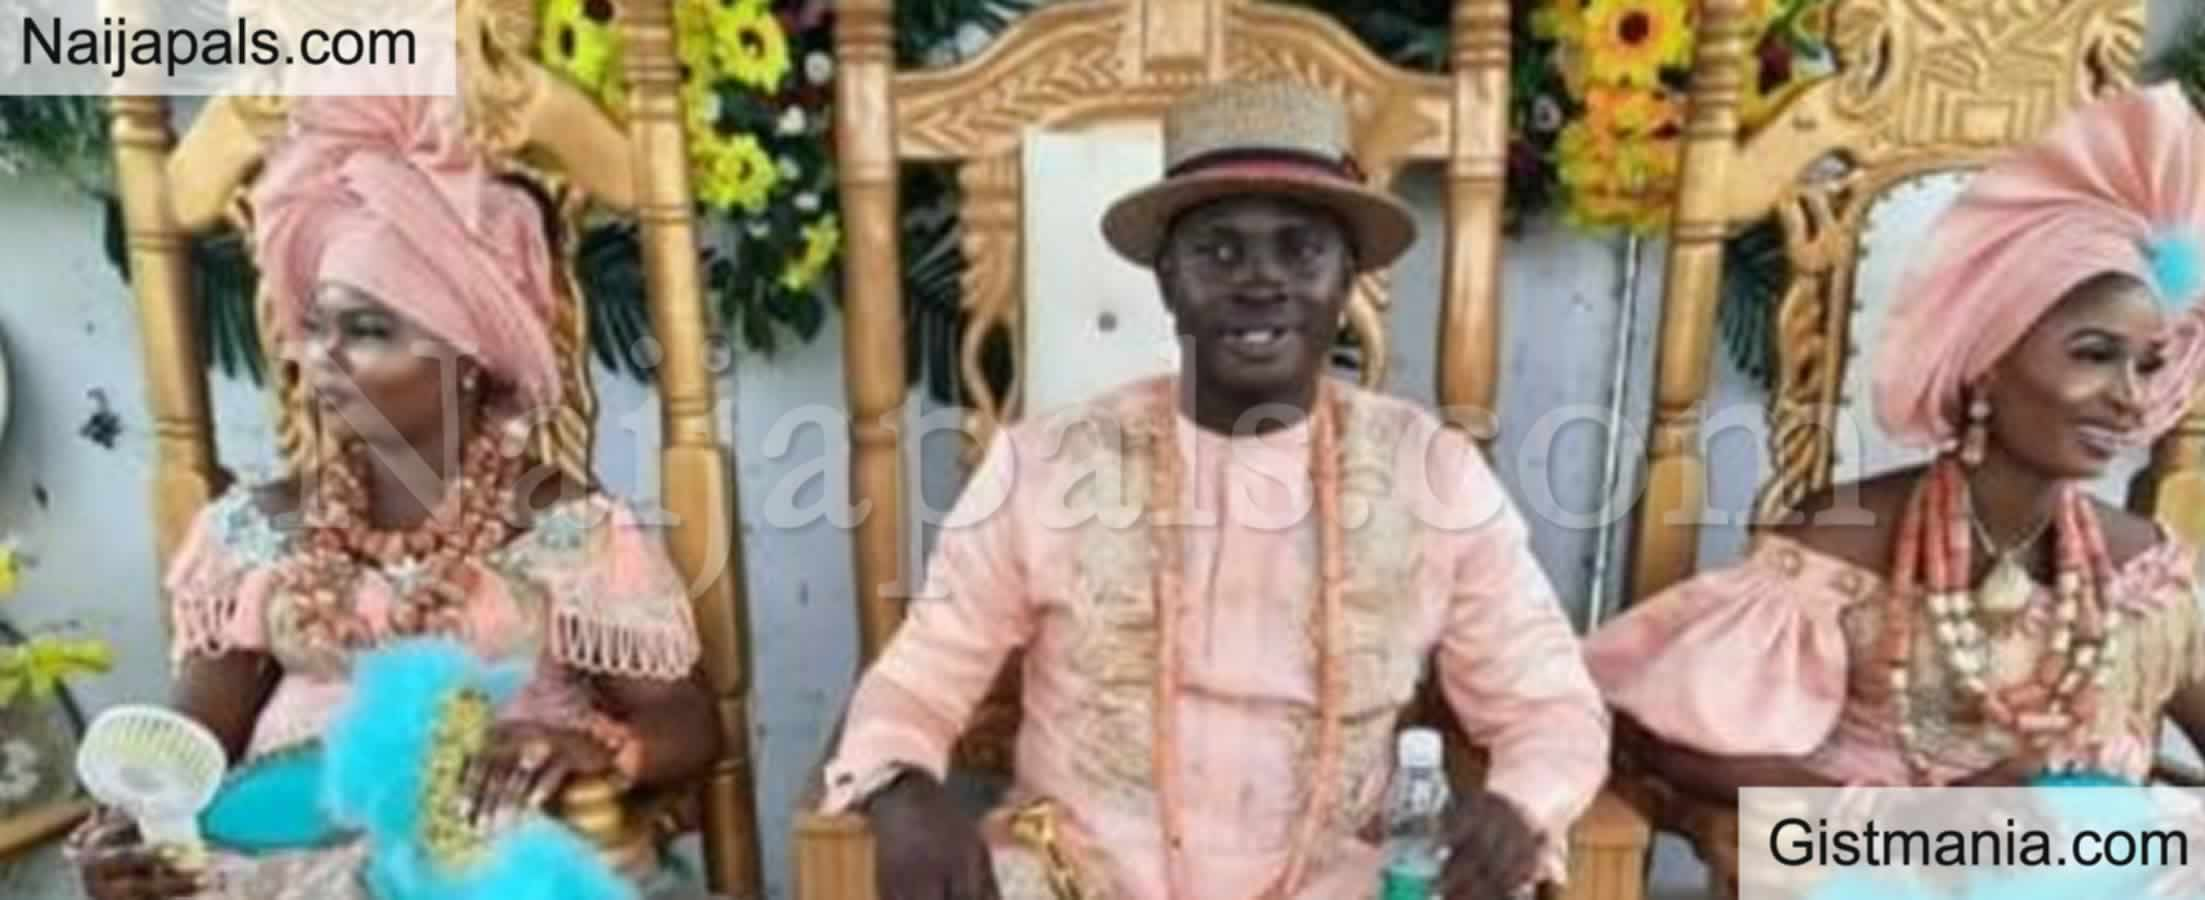 <img alt='.' class='lazyload' data-src='https://img.gistmania.com/emot/photo.png' /> <b>Photos From The Wedding Of The Nigerian Man Who Wedded Two Women On The Same Day</b>